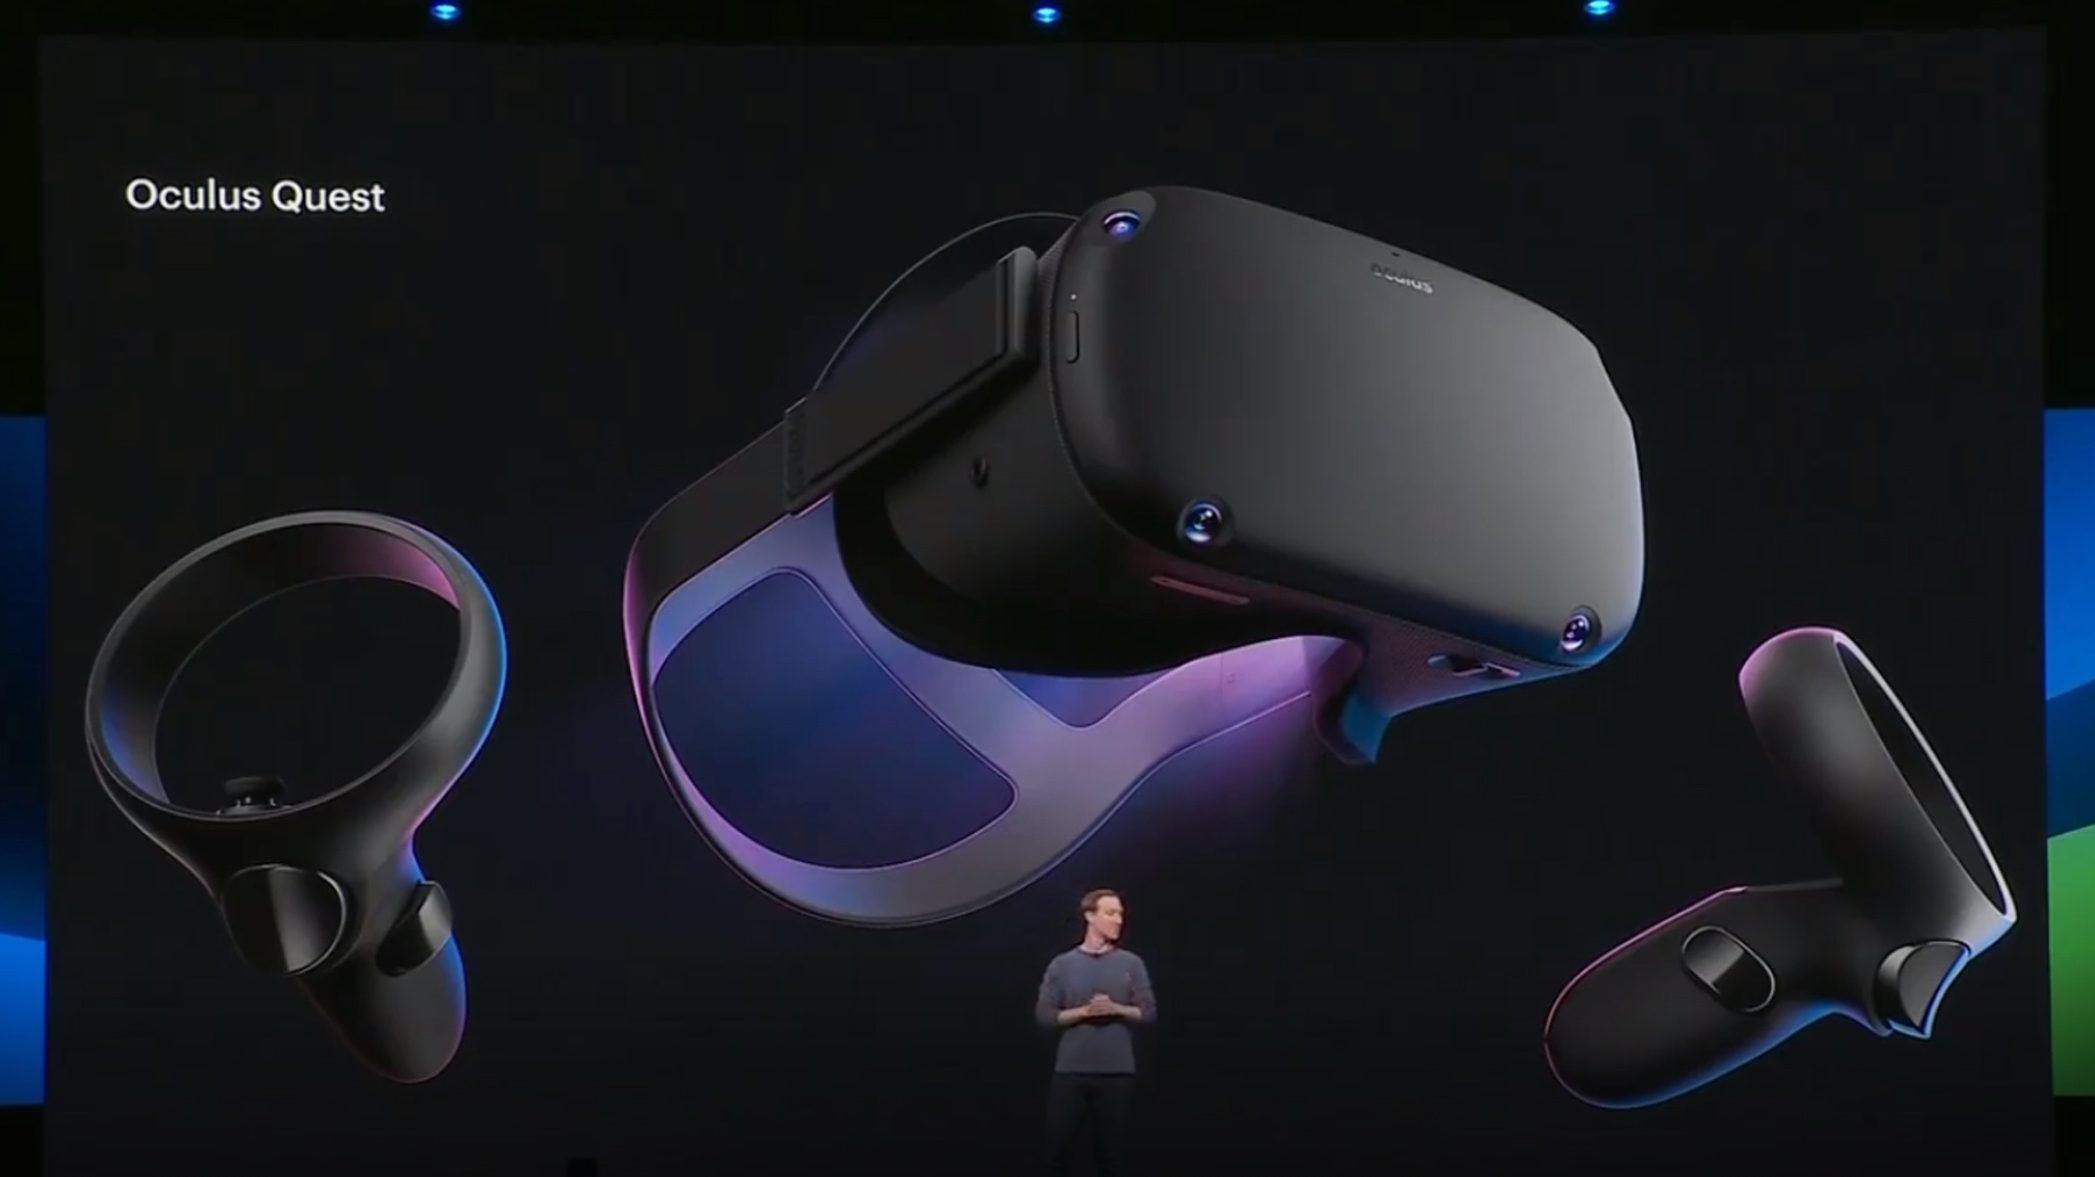 Oculus Rift S And Oculus Quest Official Price And Release Date Oculus Vr Experience Vr Headset